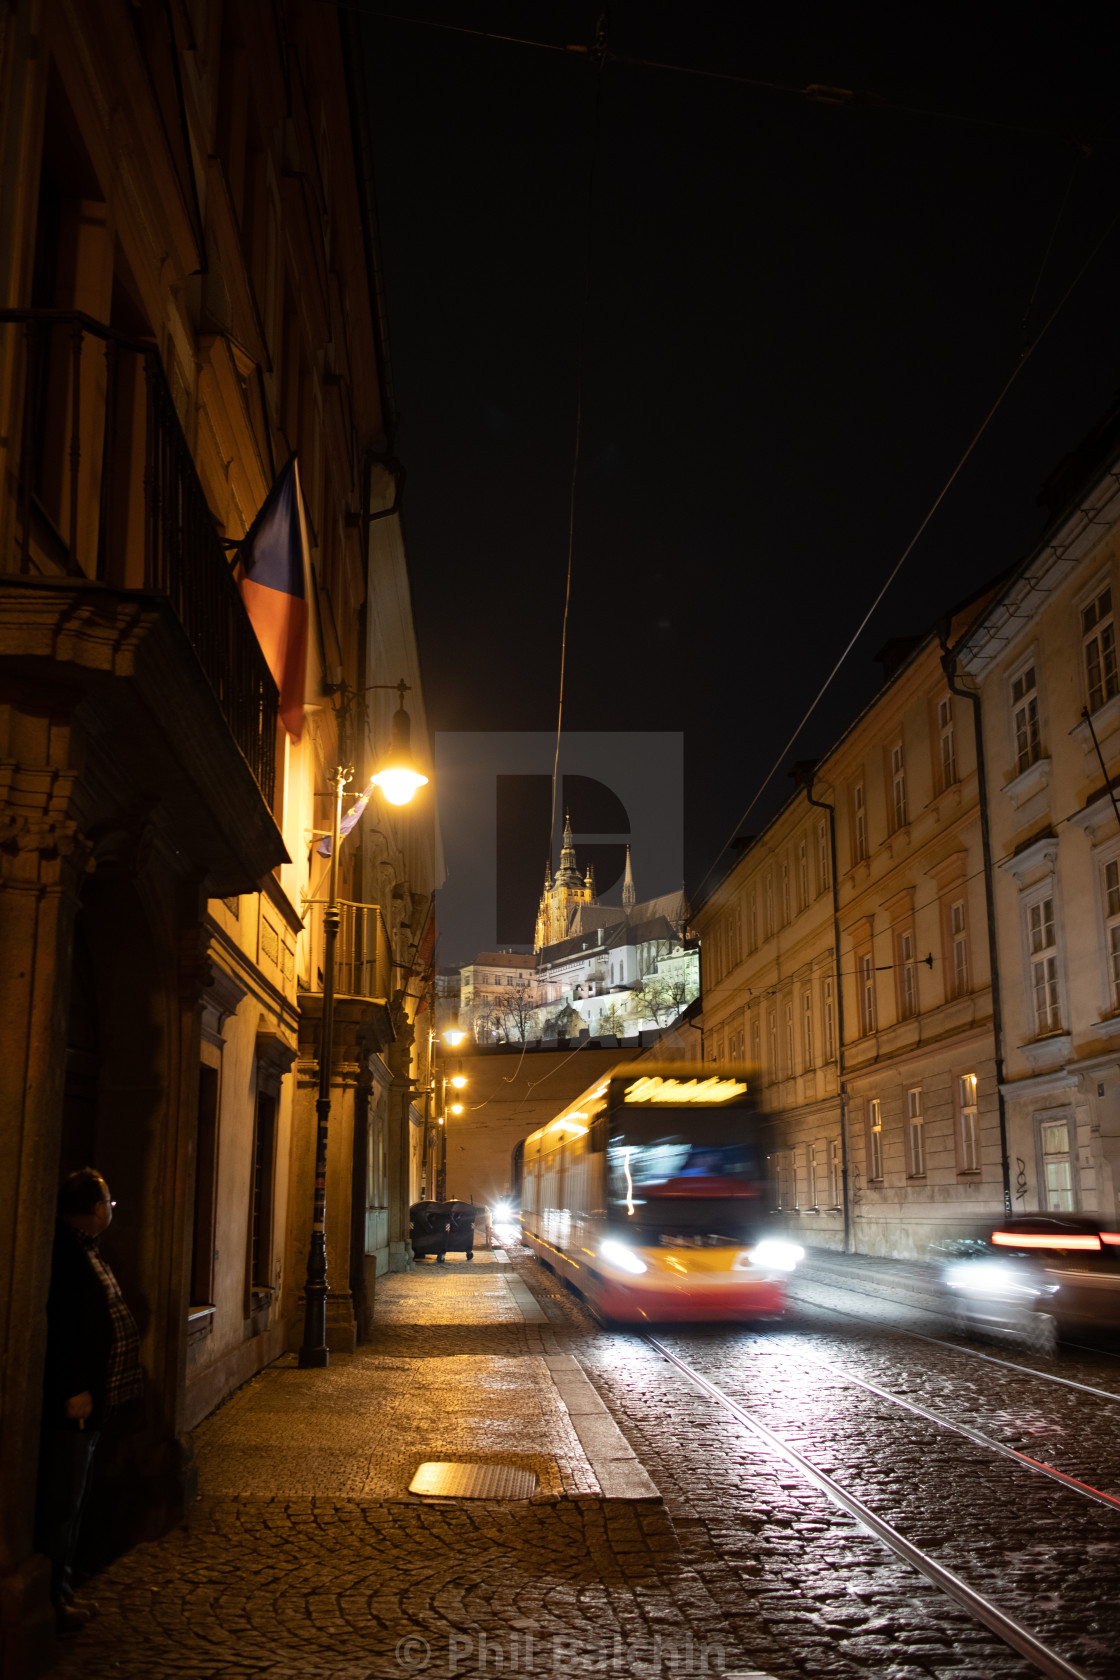 """Nighttime tram in Prage, czechia"" stock image"